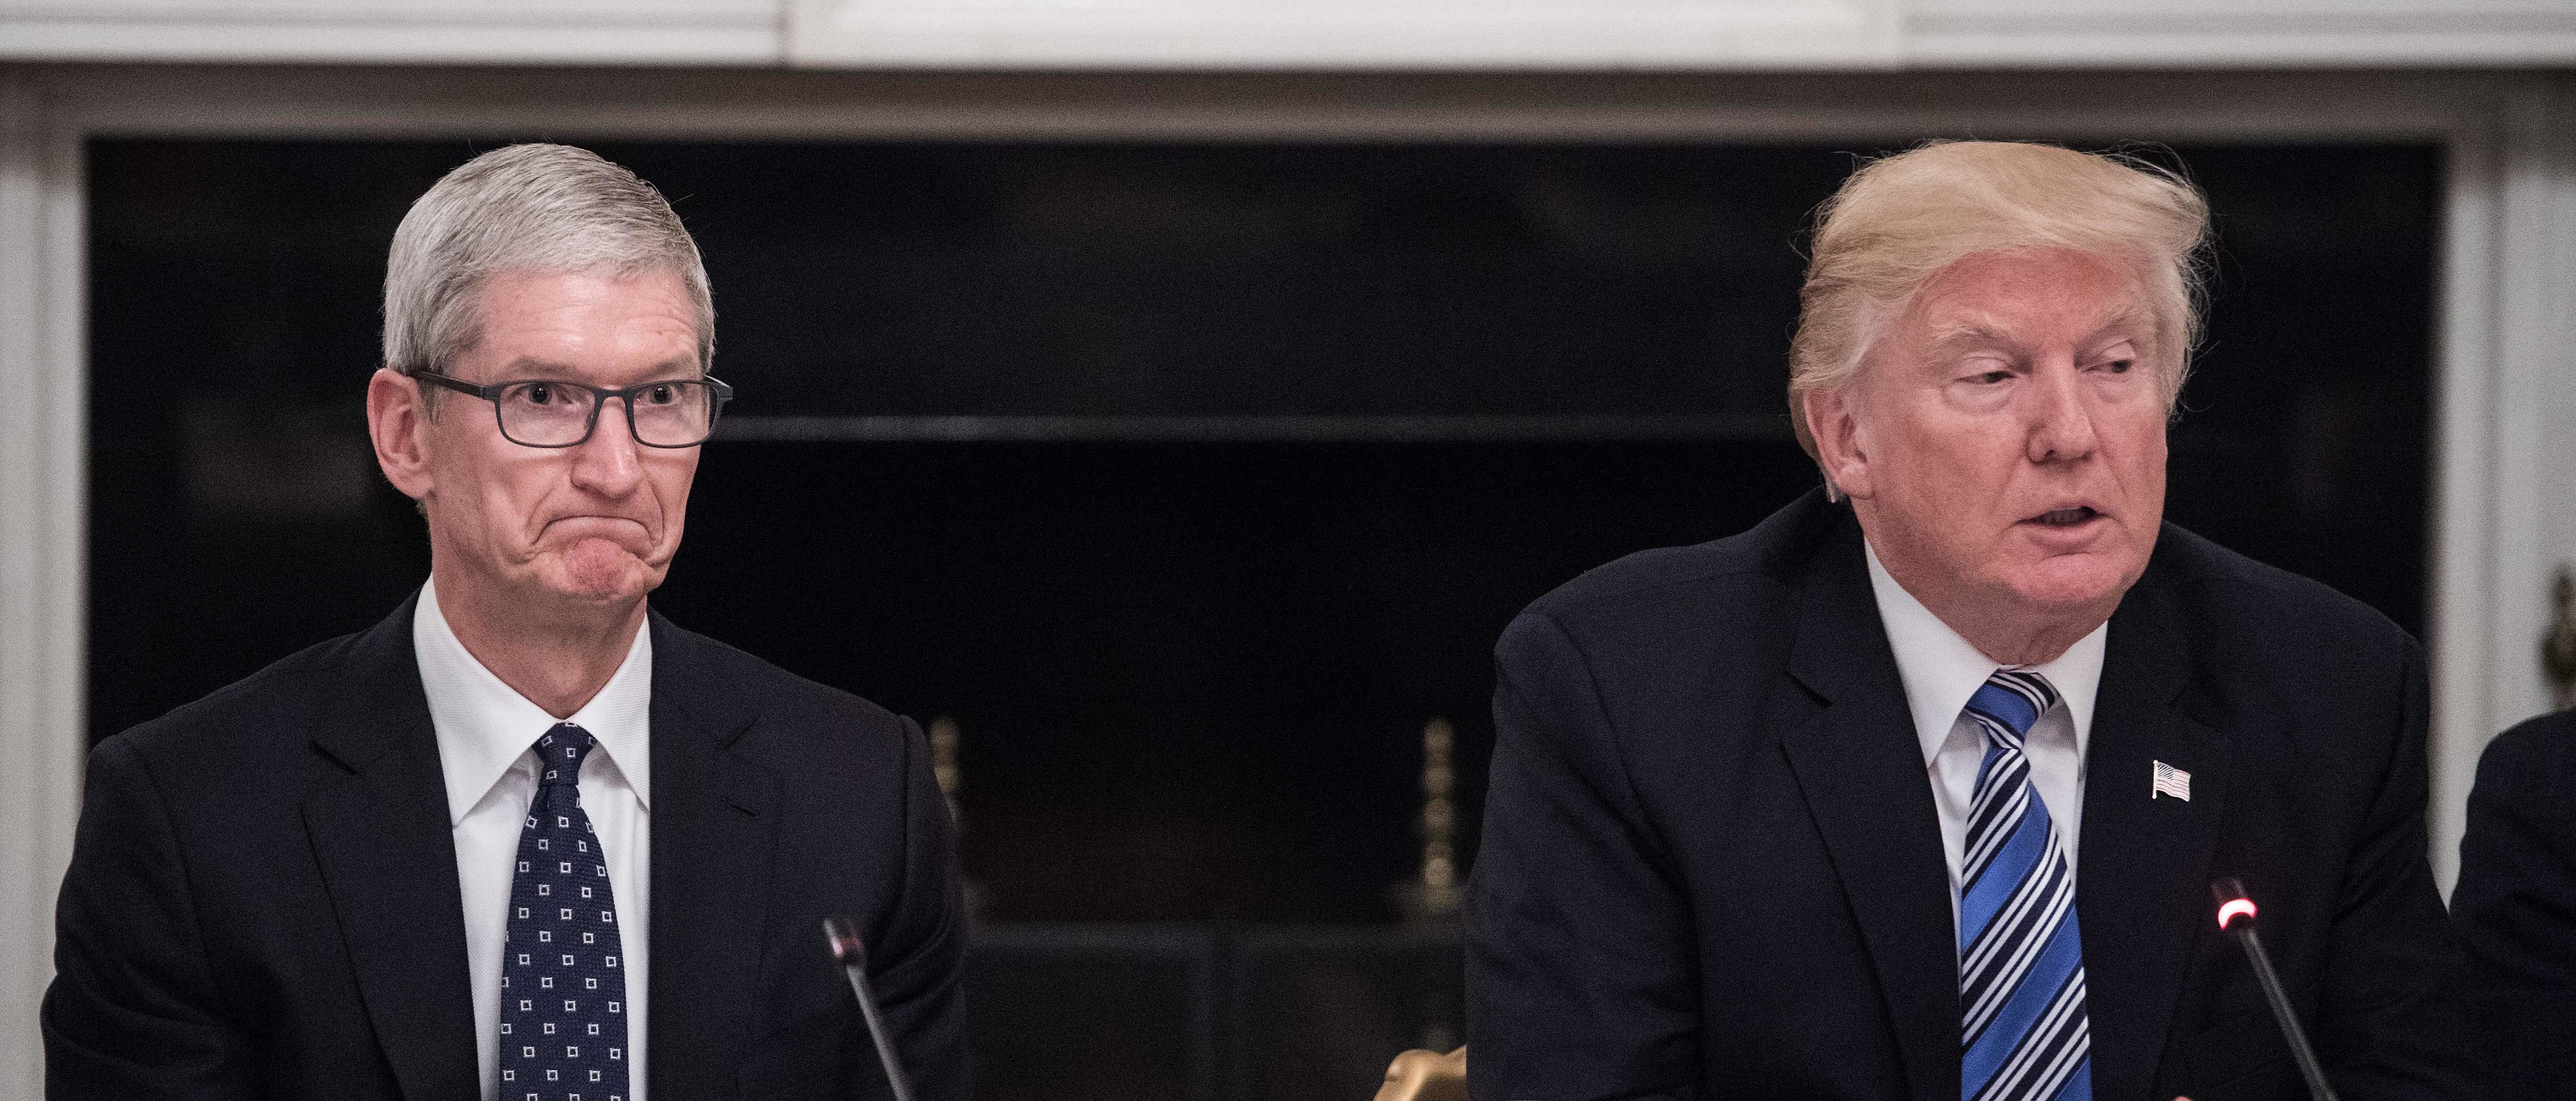 Apple CEO Tim Cook (L) listens to US President Donald Trump during an American Technology Council roundtable at the White House in Washington, DC, on June 19, 2017. (NICHOLAS KAMM/AFP/Getty Images)